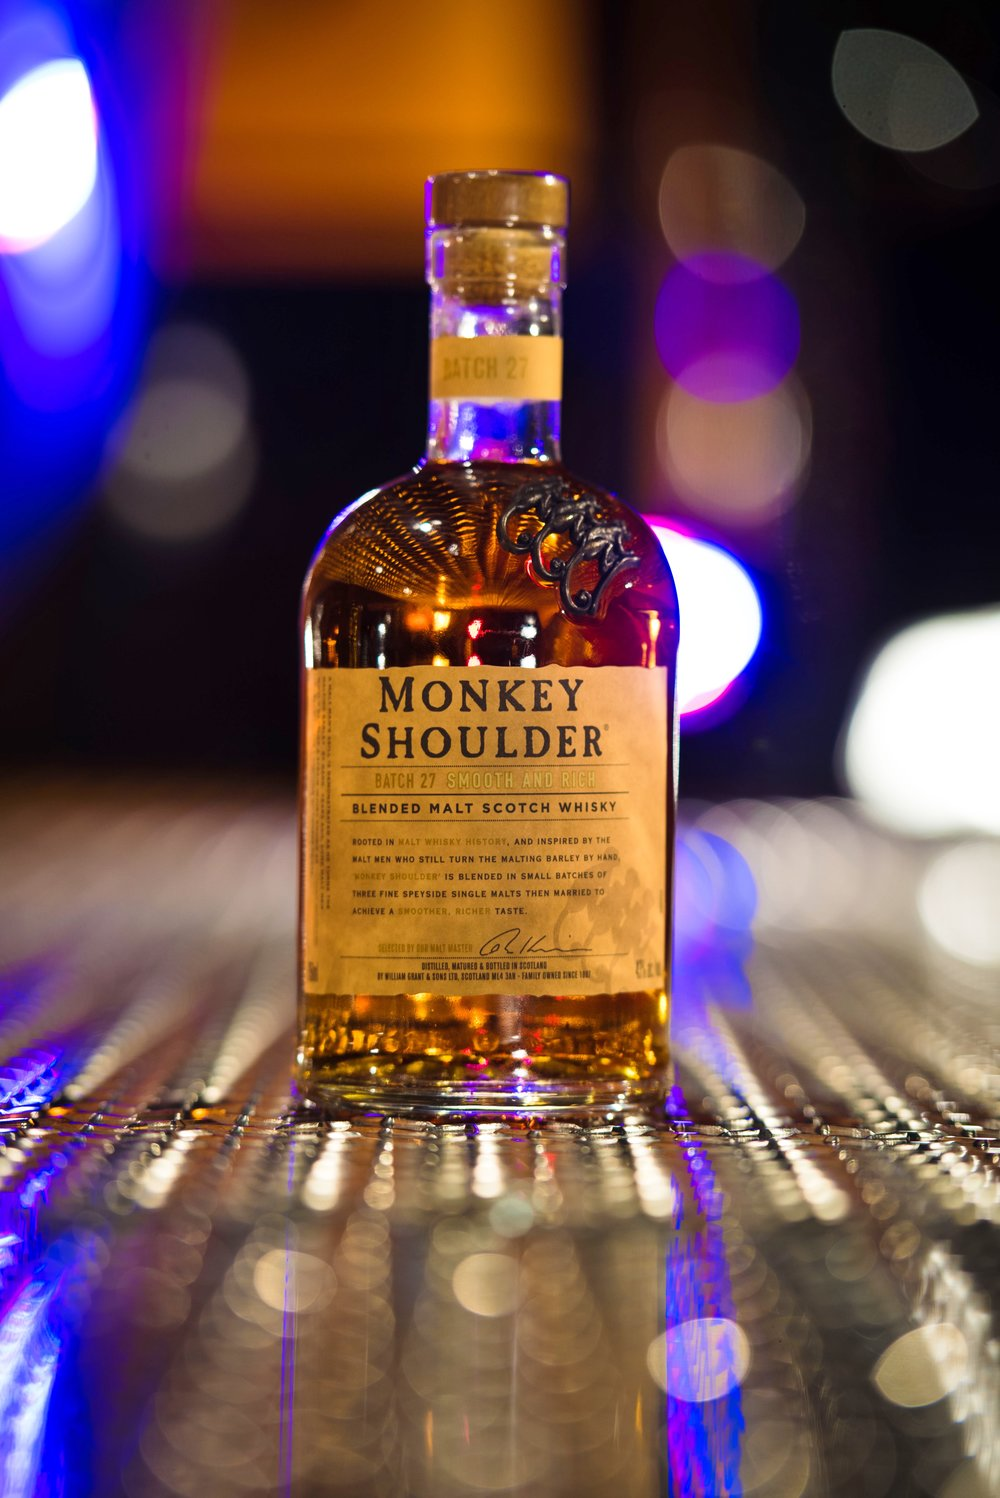 Monkey Shoulder Bottle on Mixer.jpg